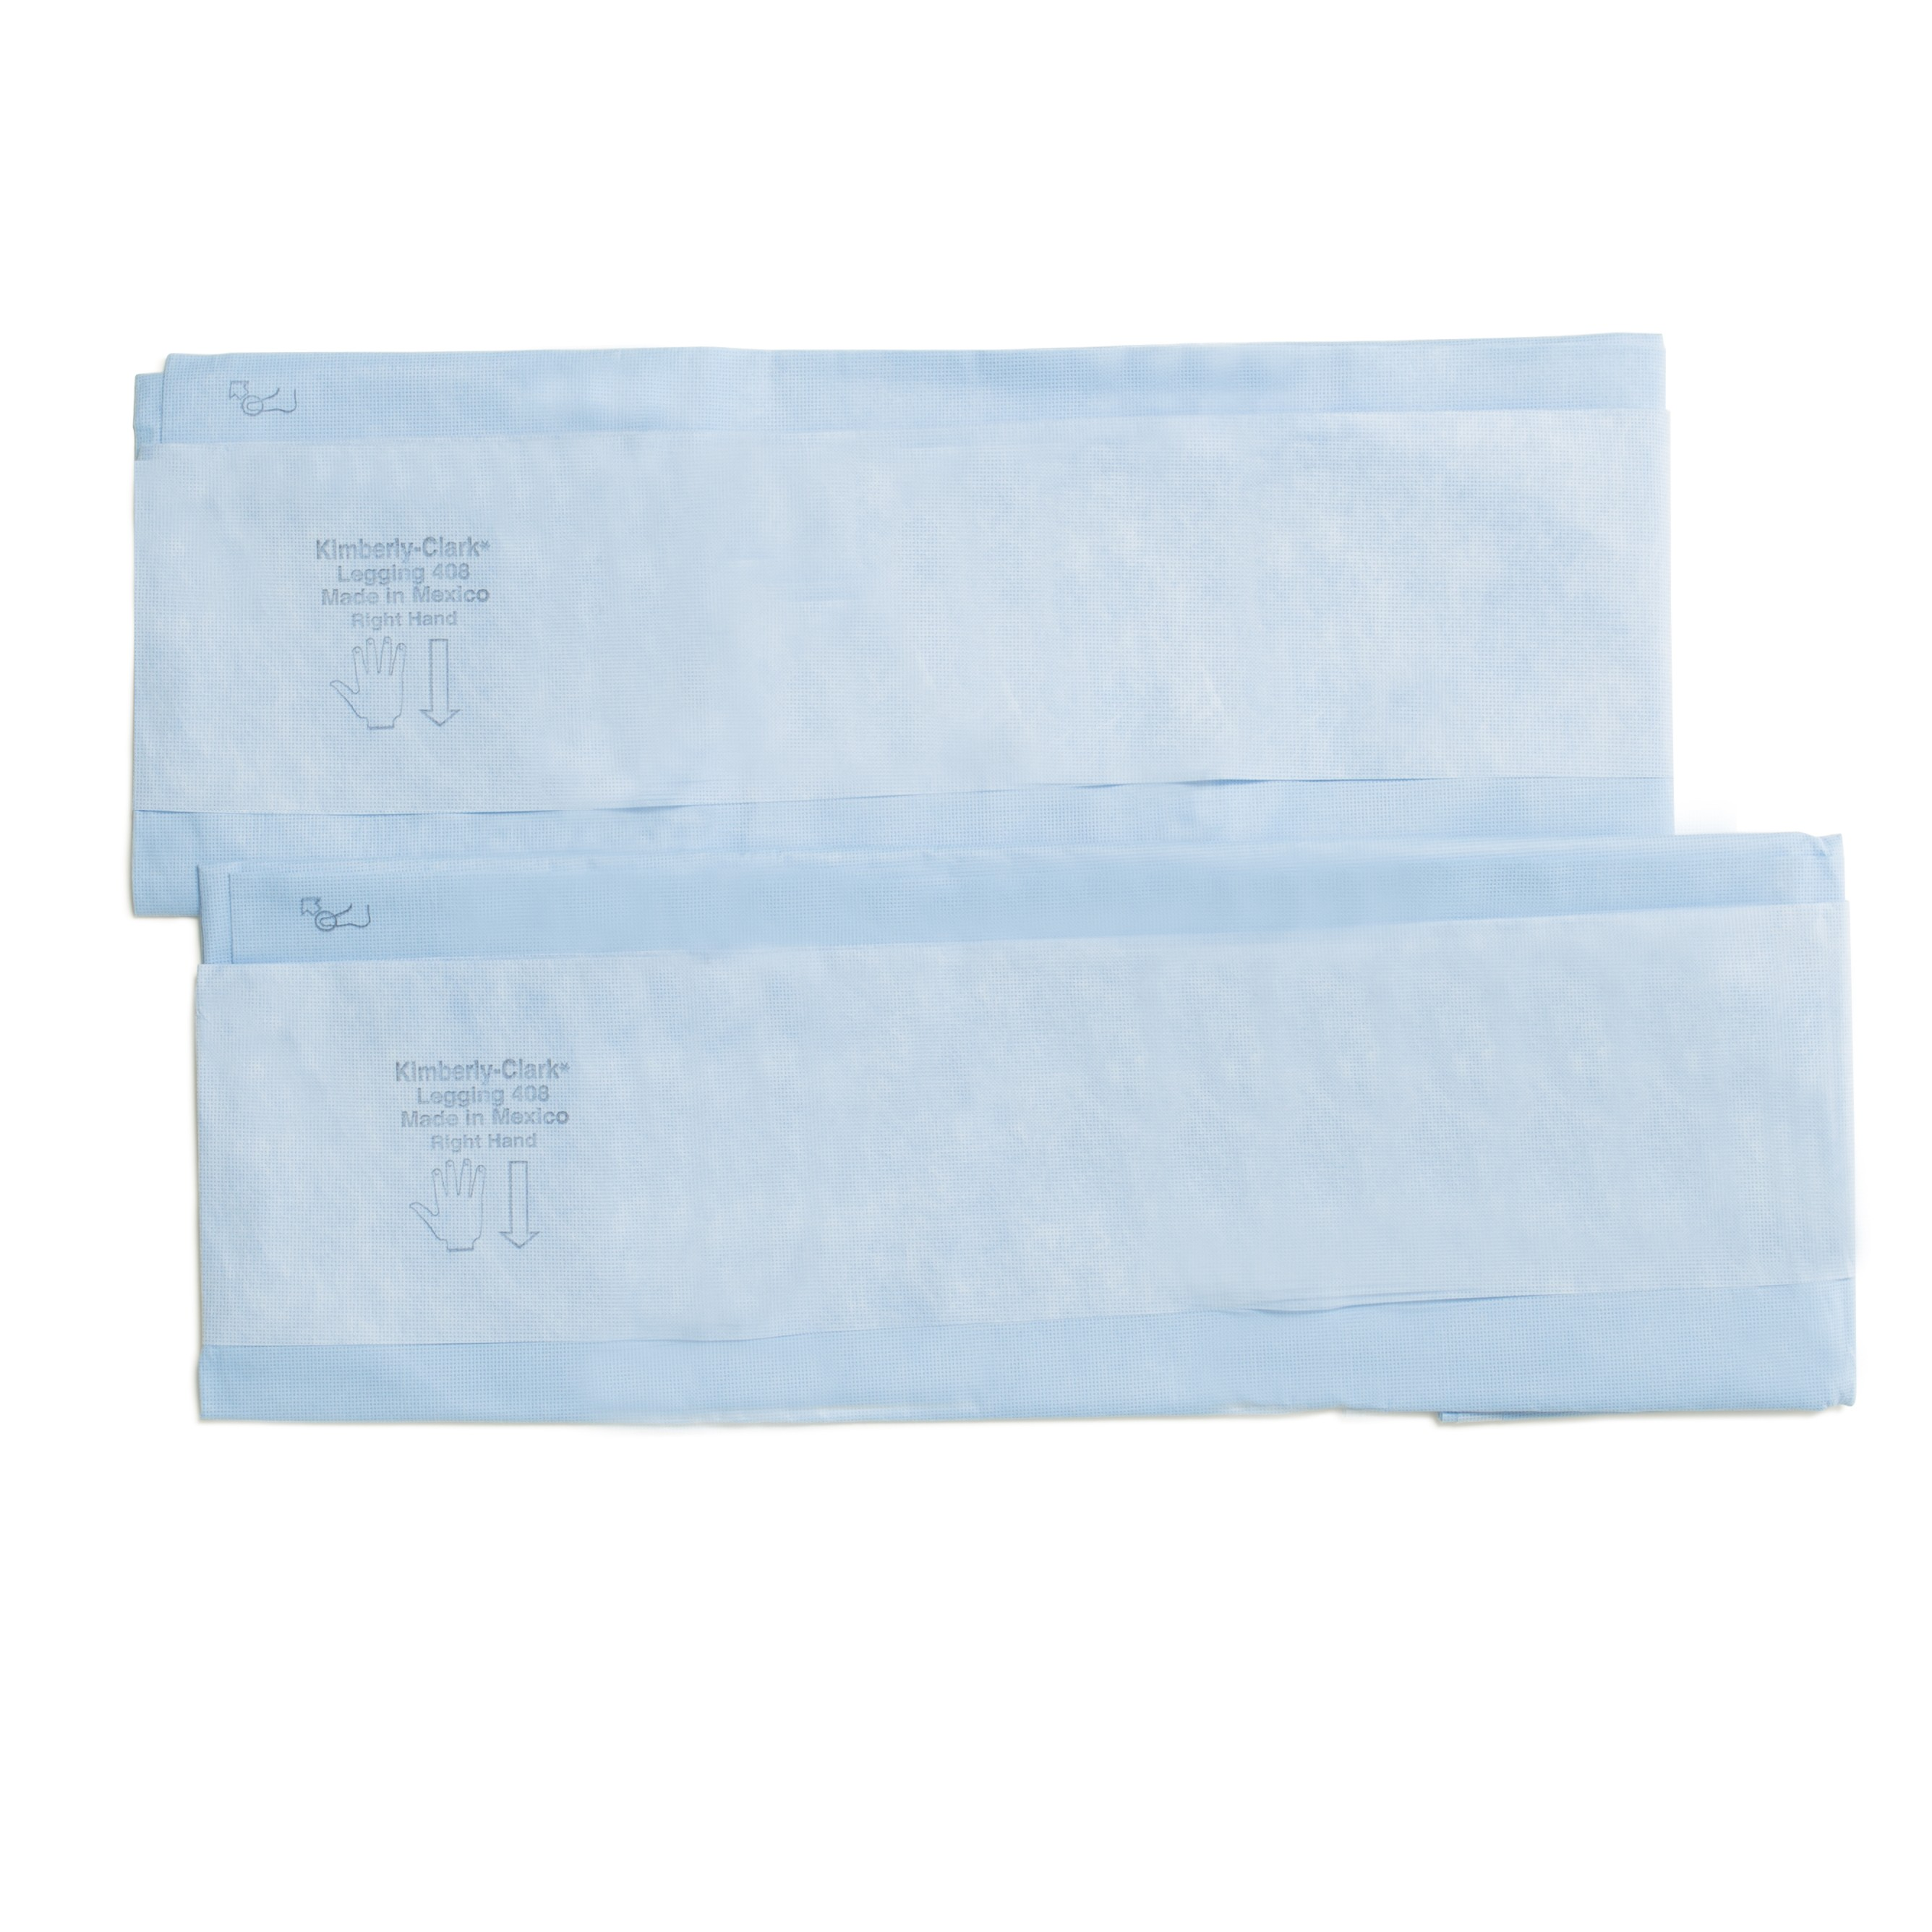 showcases strips drape pain fenestration to sterile hospital disposables busse and products drapes adhesive with patch original showcase plastic management surgical welcome